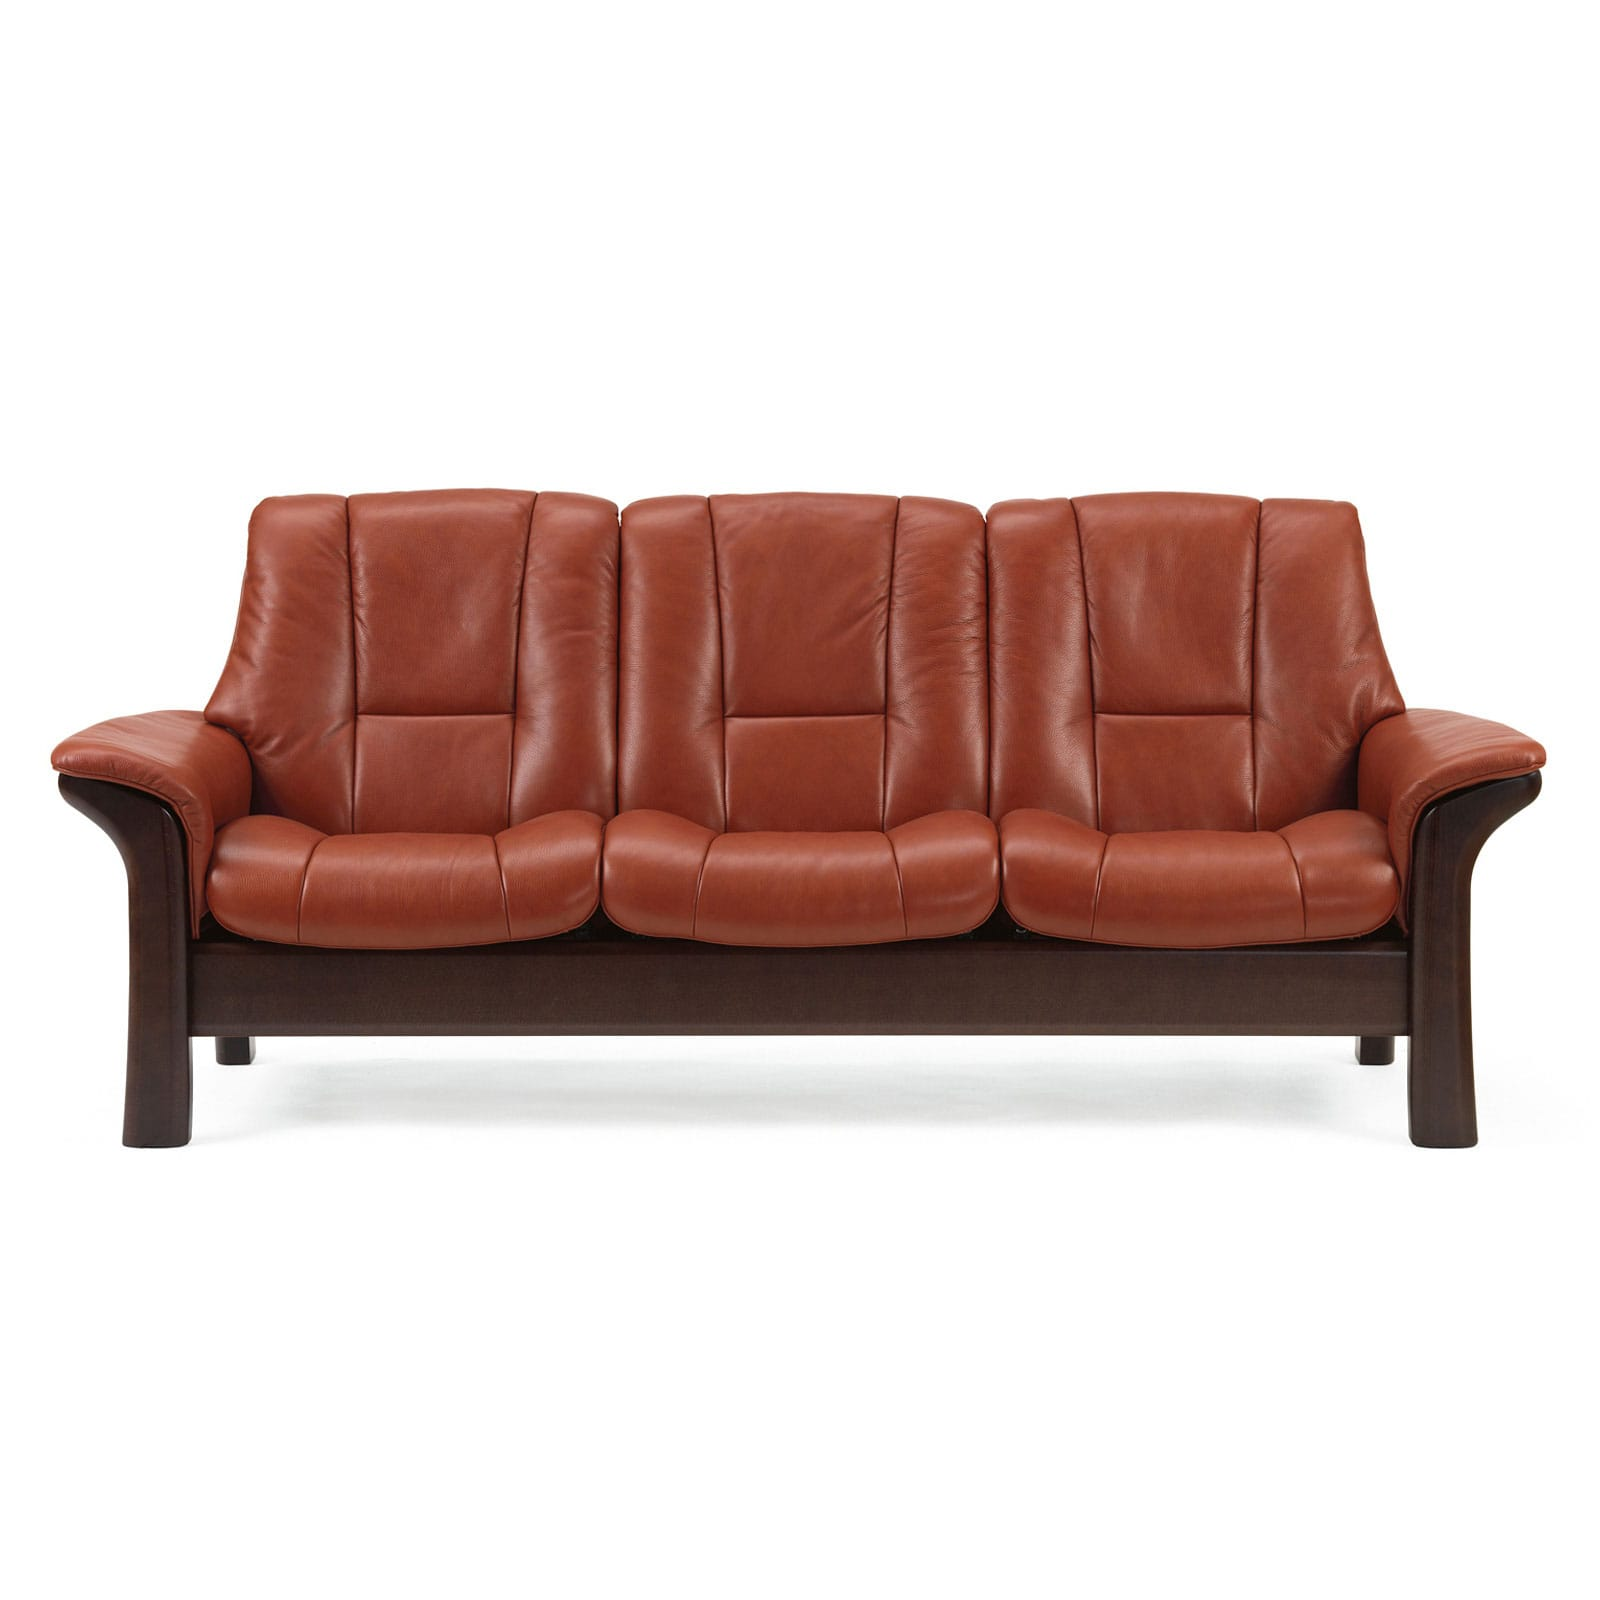 stressless eldorado sofa top of the line leather sofas 3 sitzer windsor m niedrig paloma copper